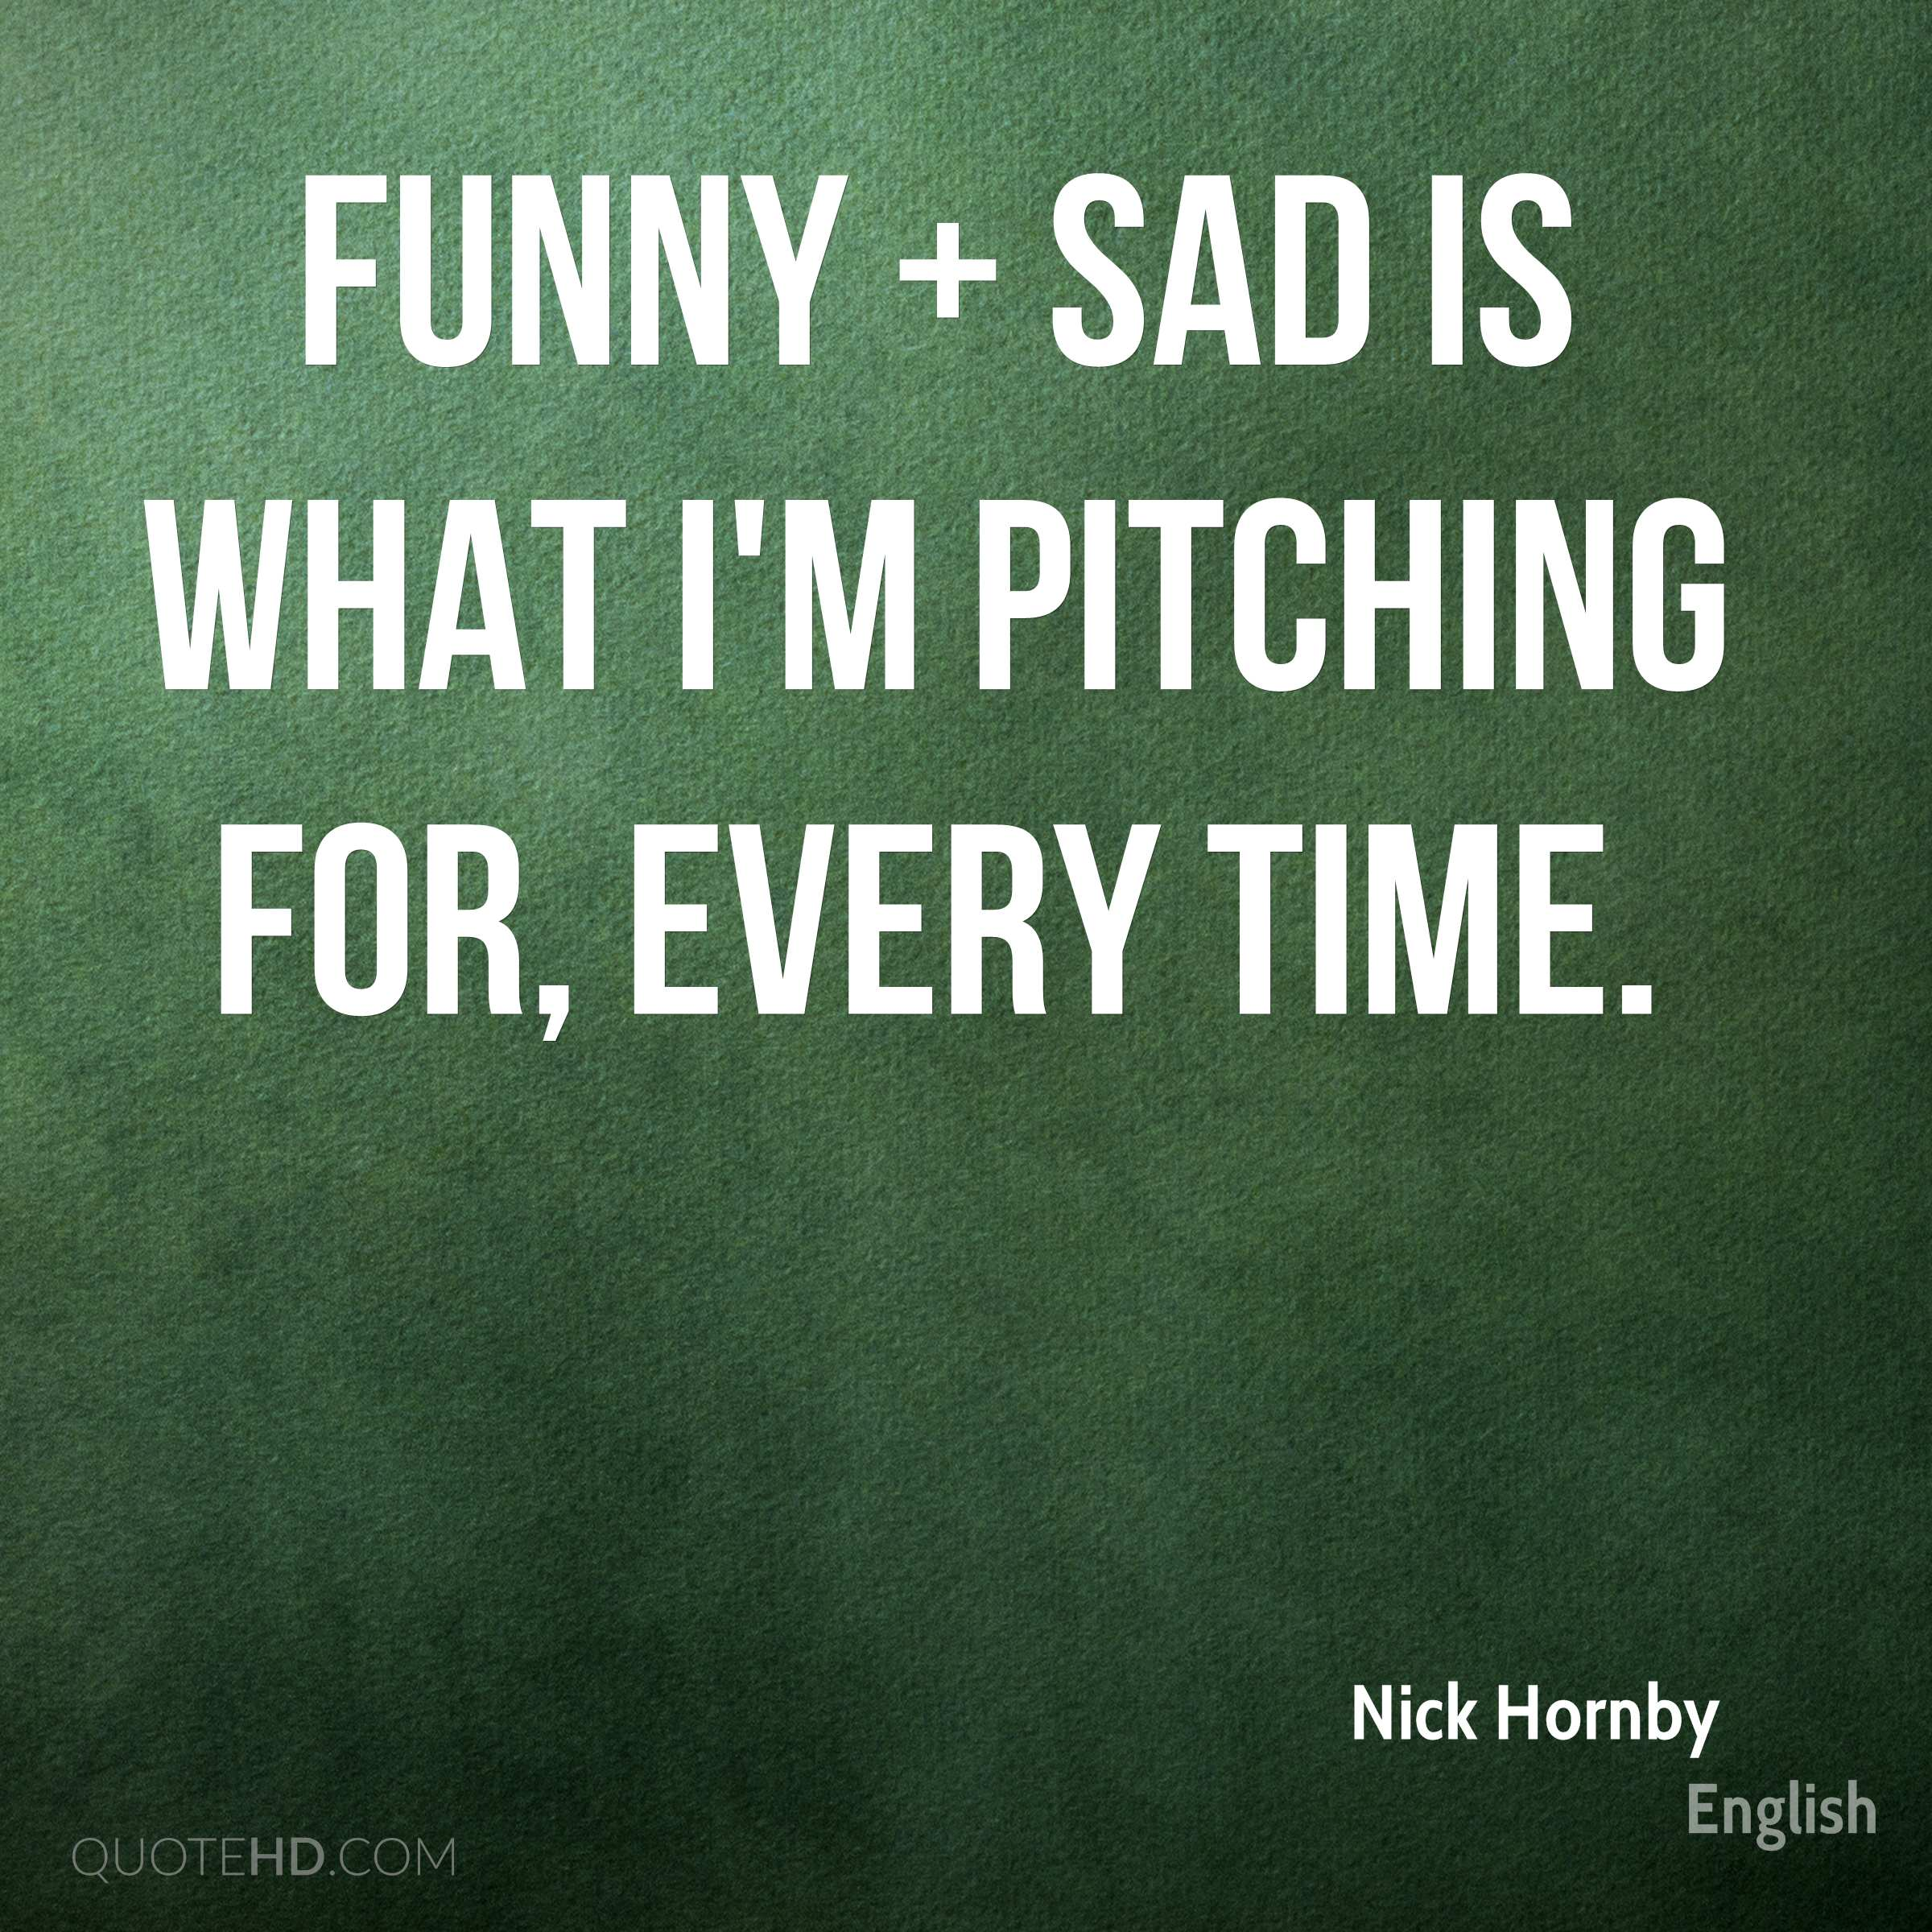 Funny + sad is what I'm pitching for, every time.